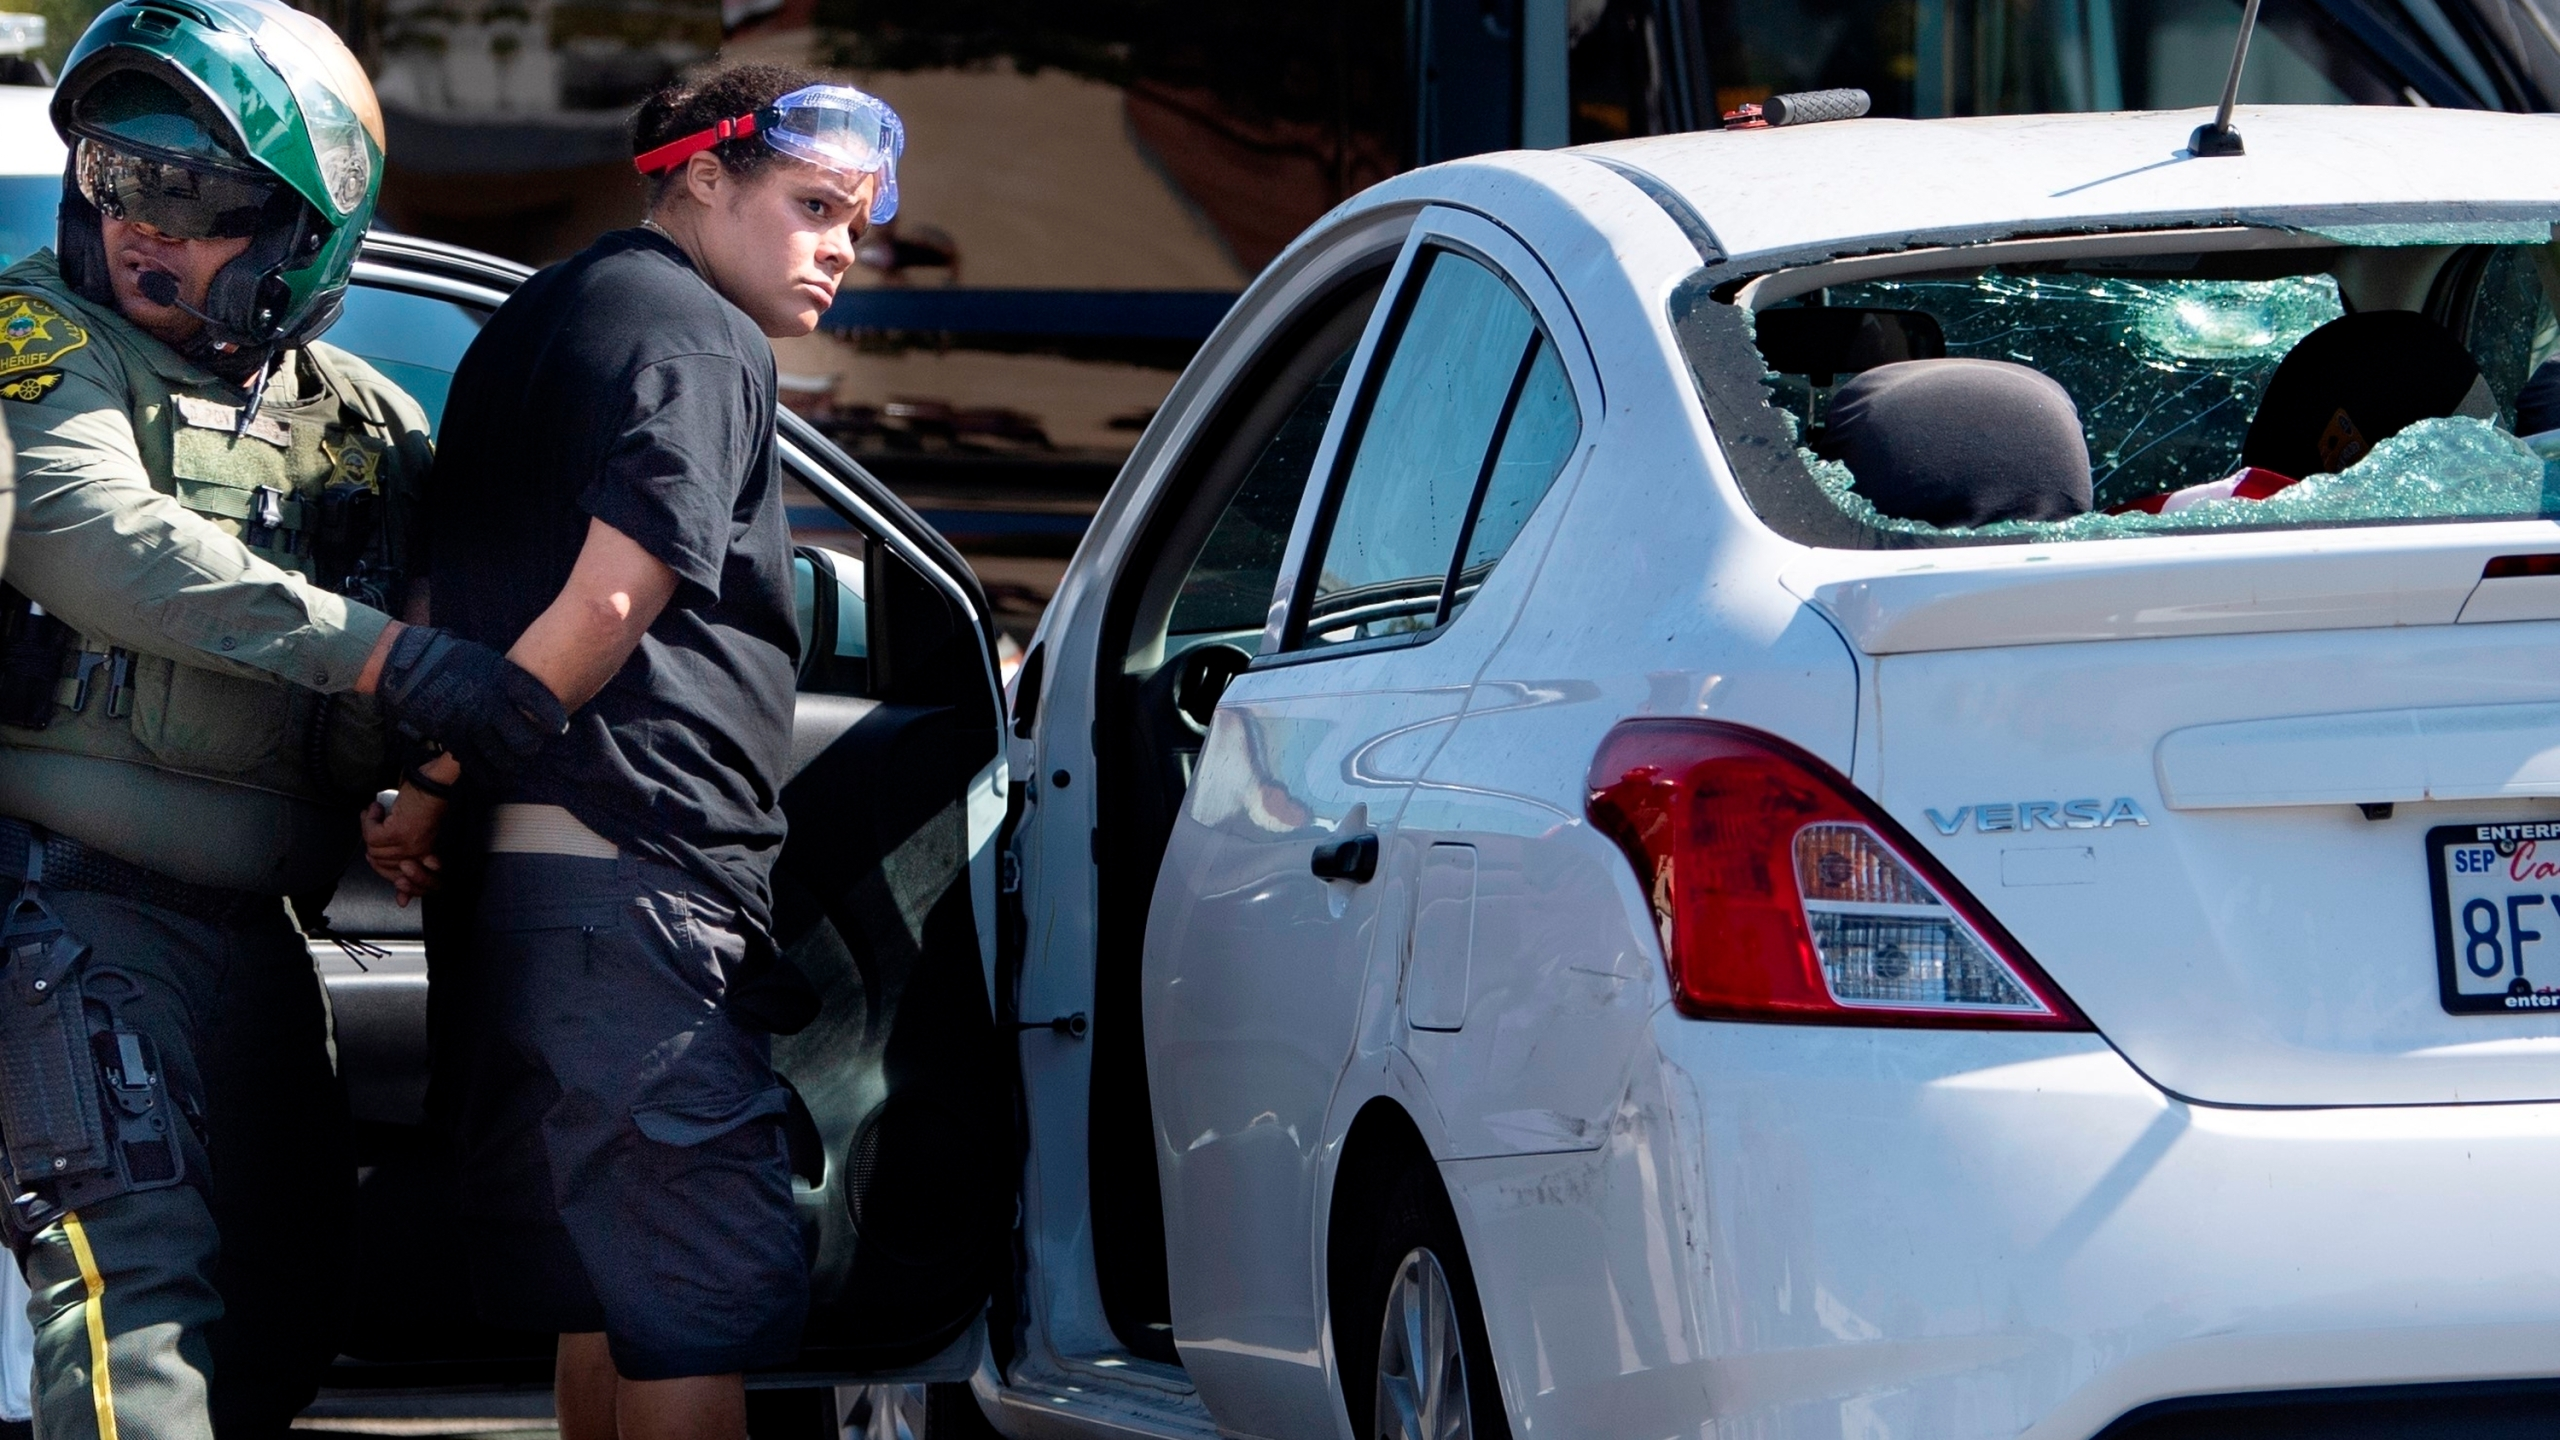 Tatiana Turner is taken into custody after witnesses said she drove her car into a crowd of protesters in Yorba Linda, Calif., on Sept. 26, 2020.(Mindy Schauer/The Orange County Register via AP)